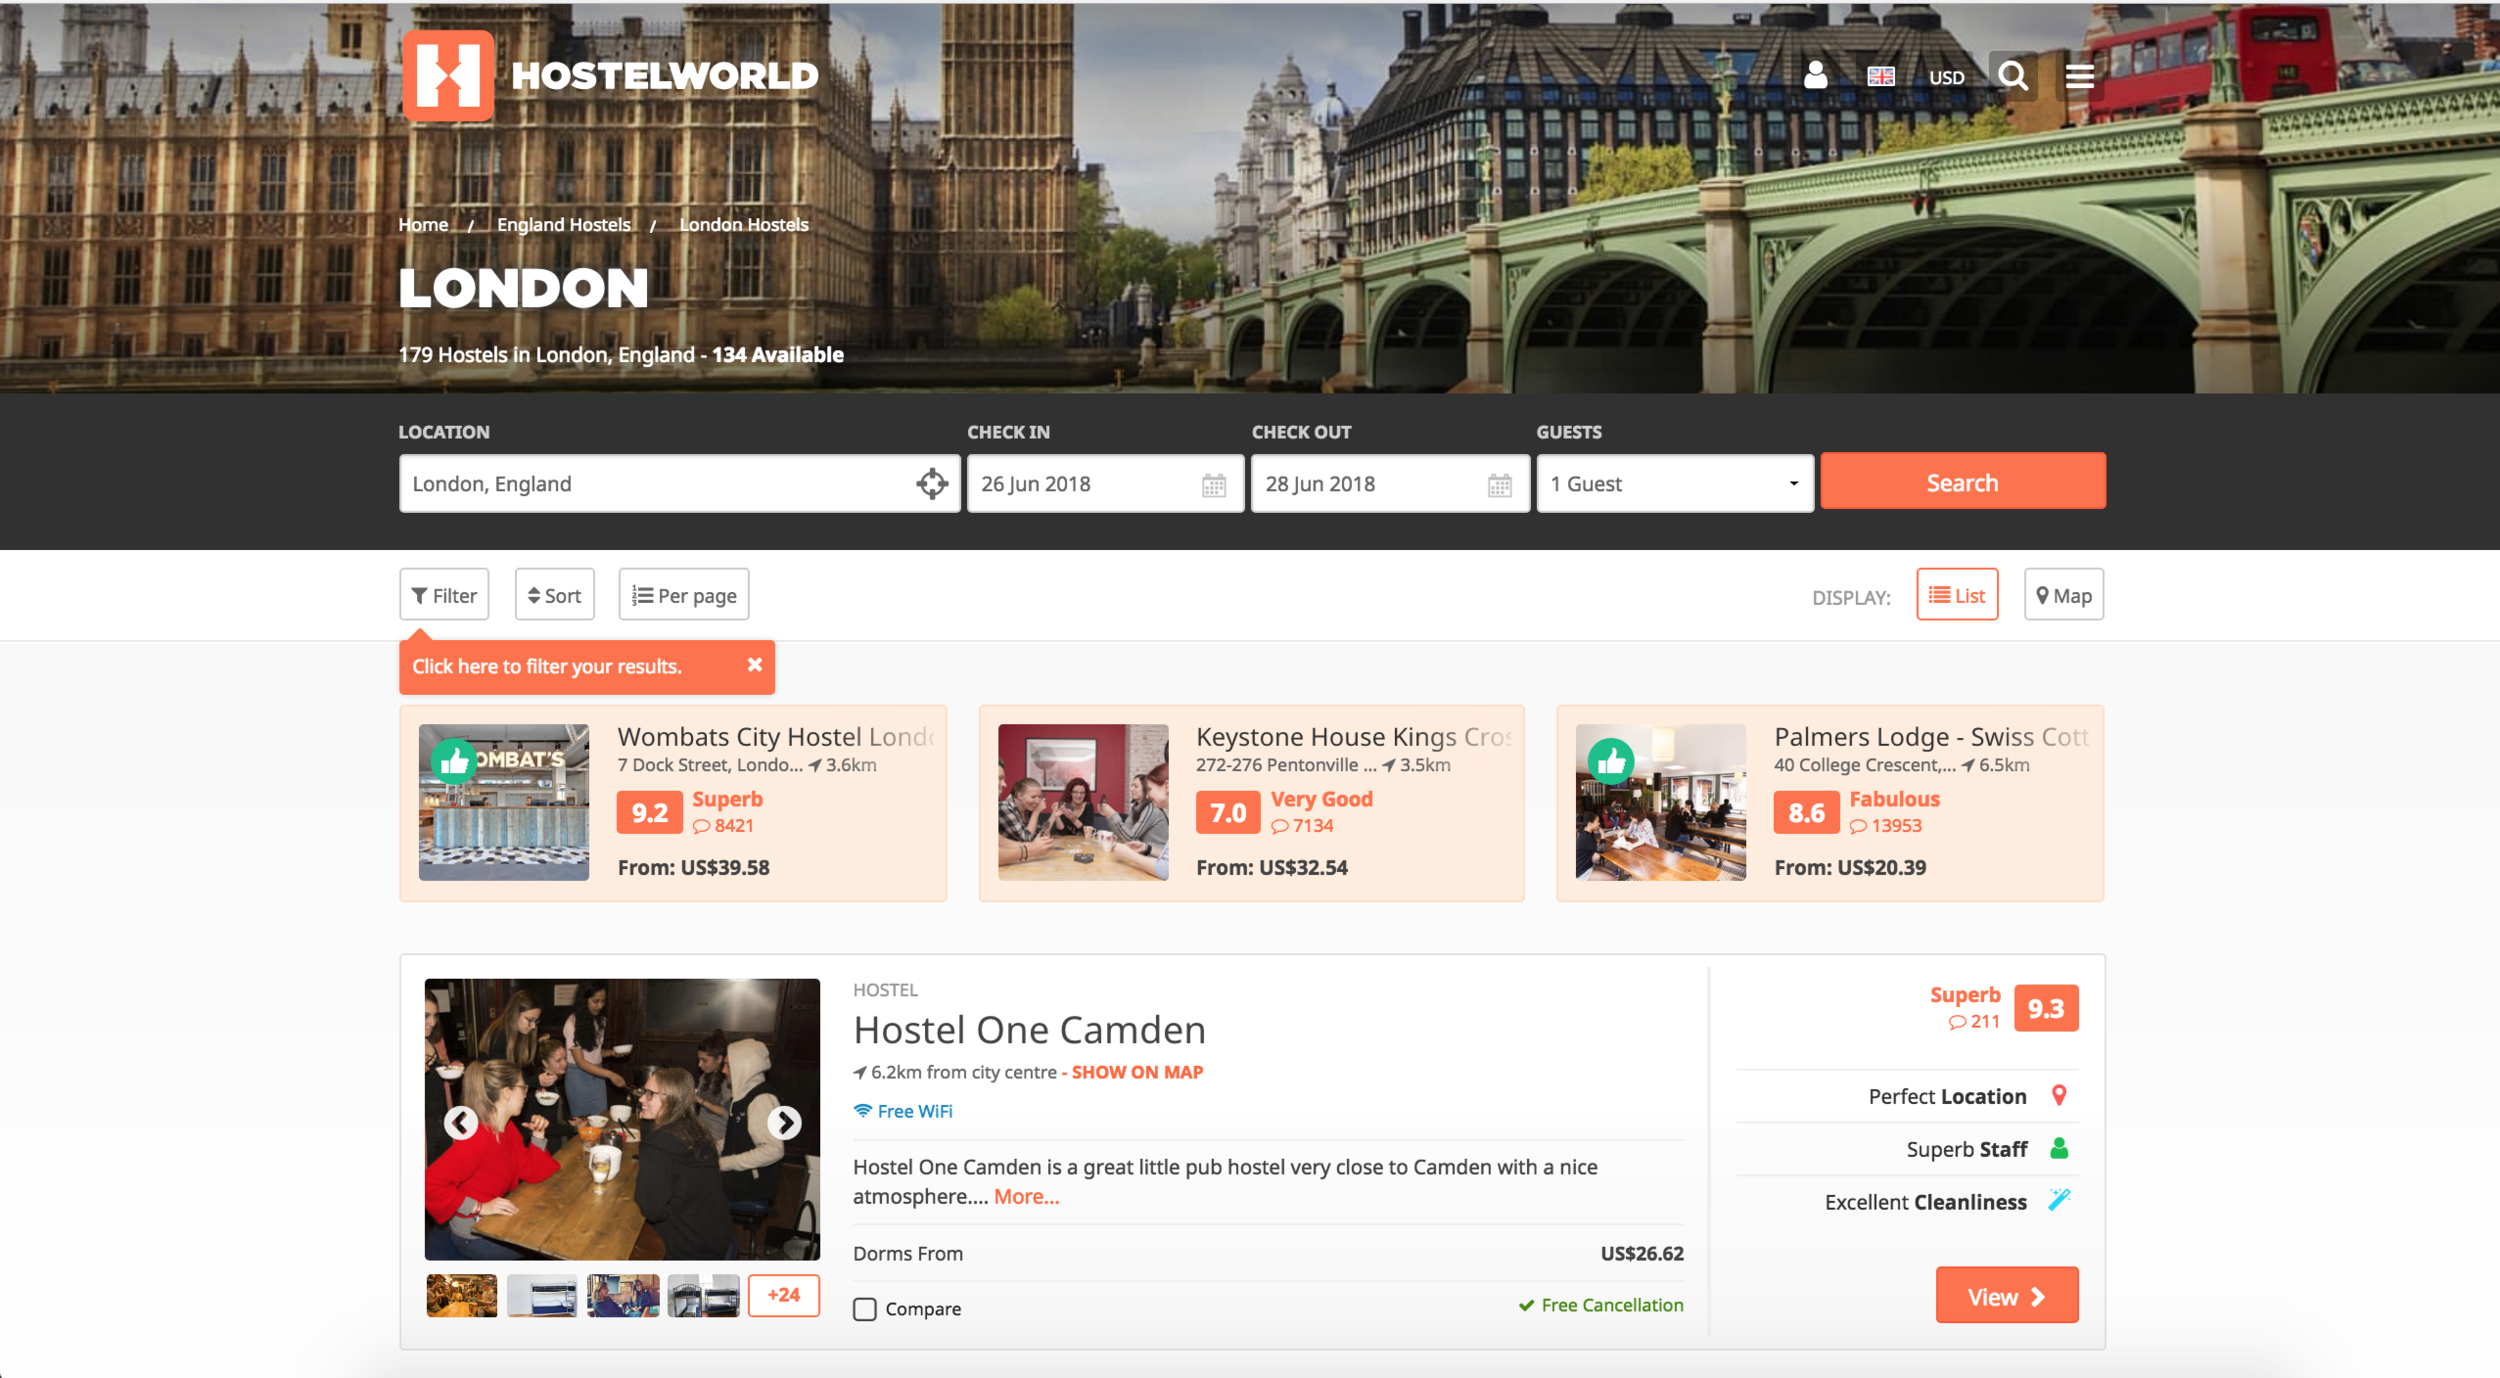 Example of HostelWorld's Search Page: